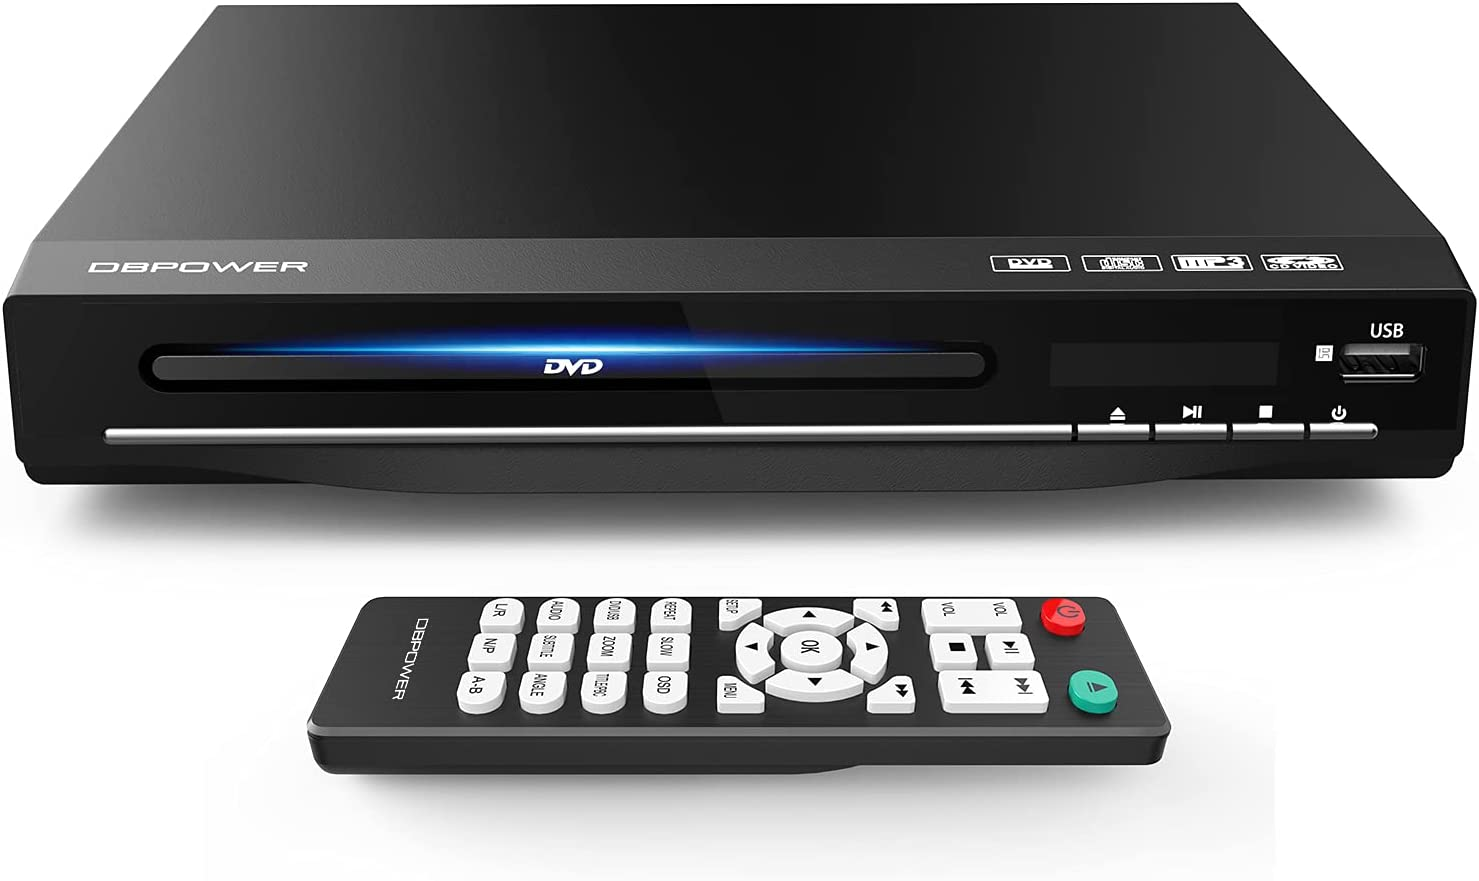 DBPOWER DVD Player for TV, Home DVD CD Player with HD 1080p Upscaling, HDMI & AV Output (HDMI & AV Cable Included), All-Region Free, Coaxial Port, USB Input, Remote Control Included